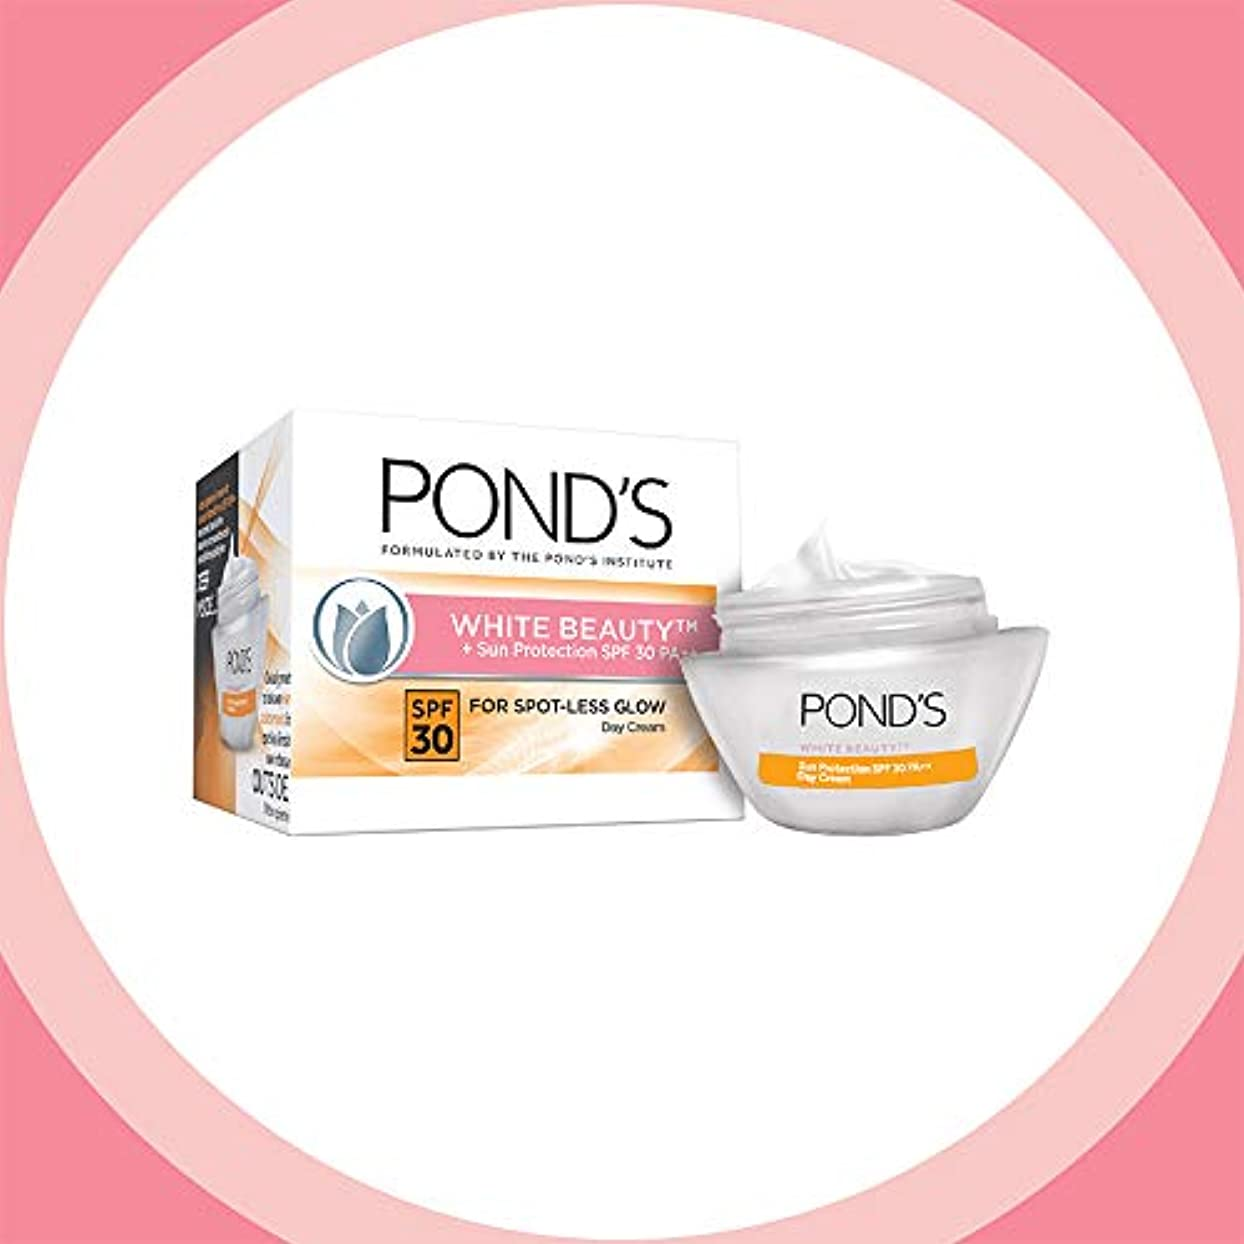 ユーモア砂漠美的POND'S White Beauty Sun Protection SPF 30 Day Cream, 35 gms (並行インポート) India